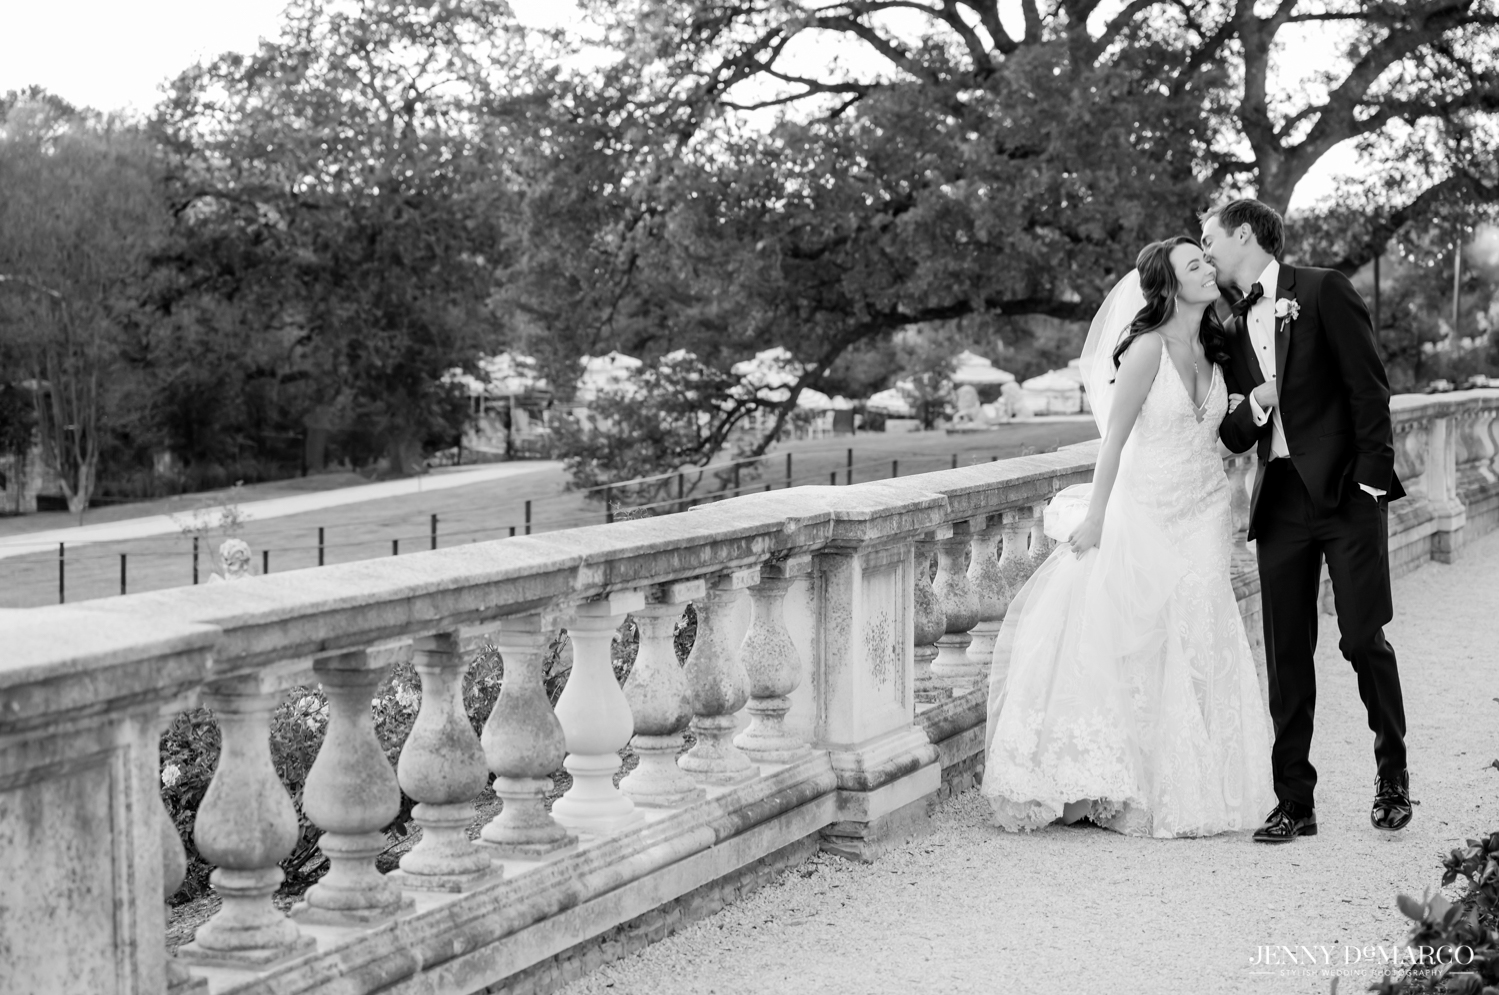 groom kissing bride on the cheek as they walk around the estate at Commodore Perry